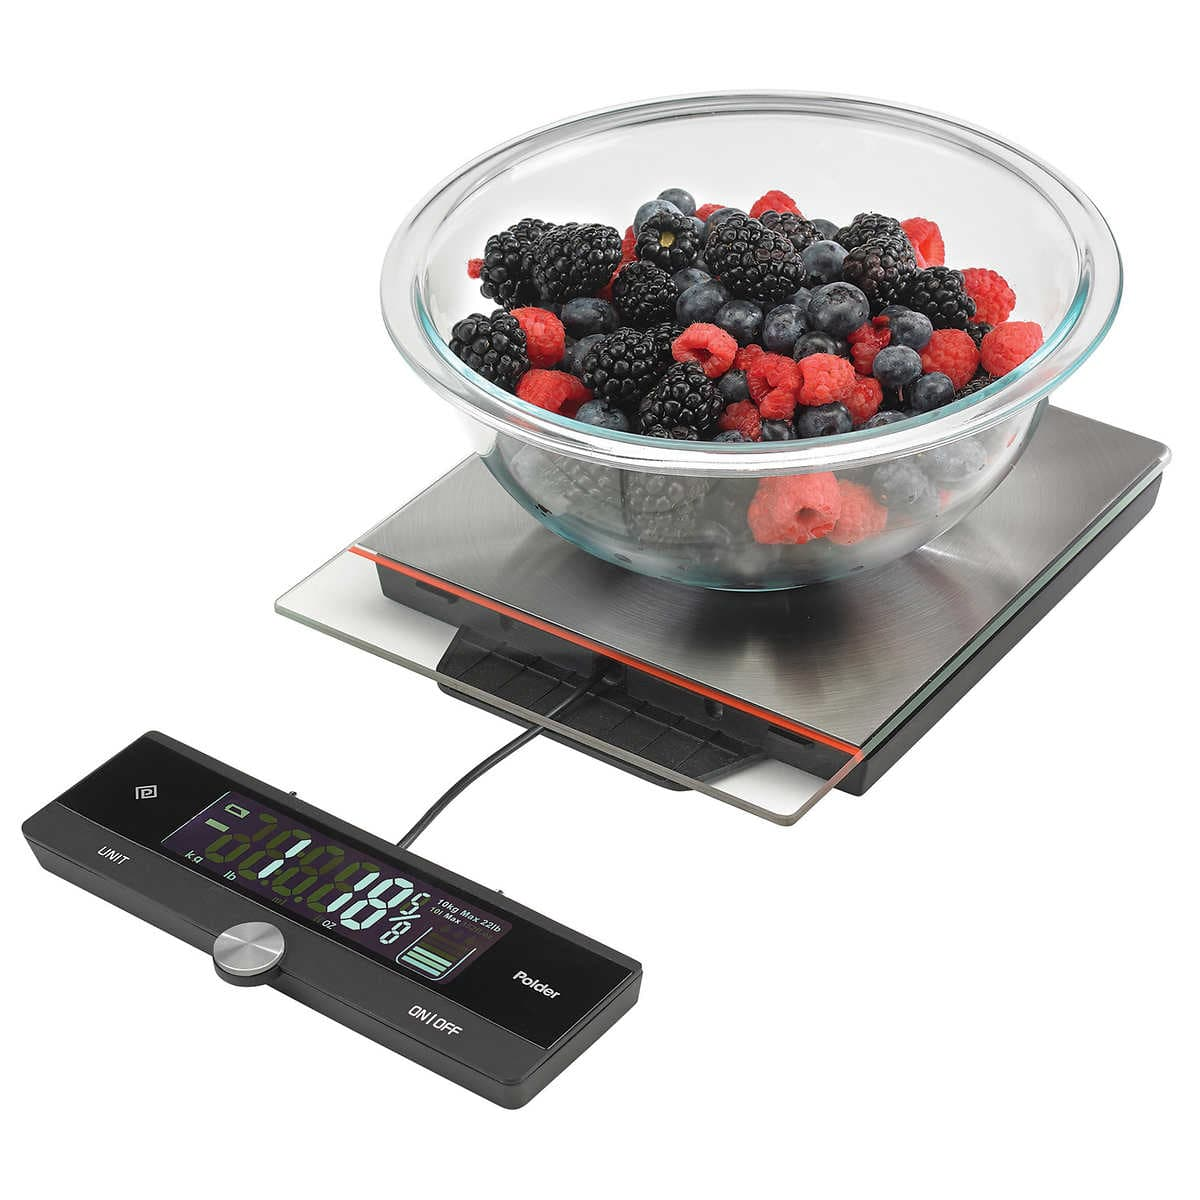 Digital Kitchen Scale with Pull-Out Display $15.99 @ costco stores or online